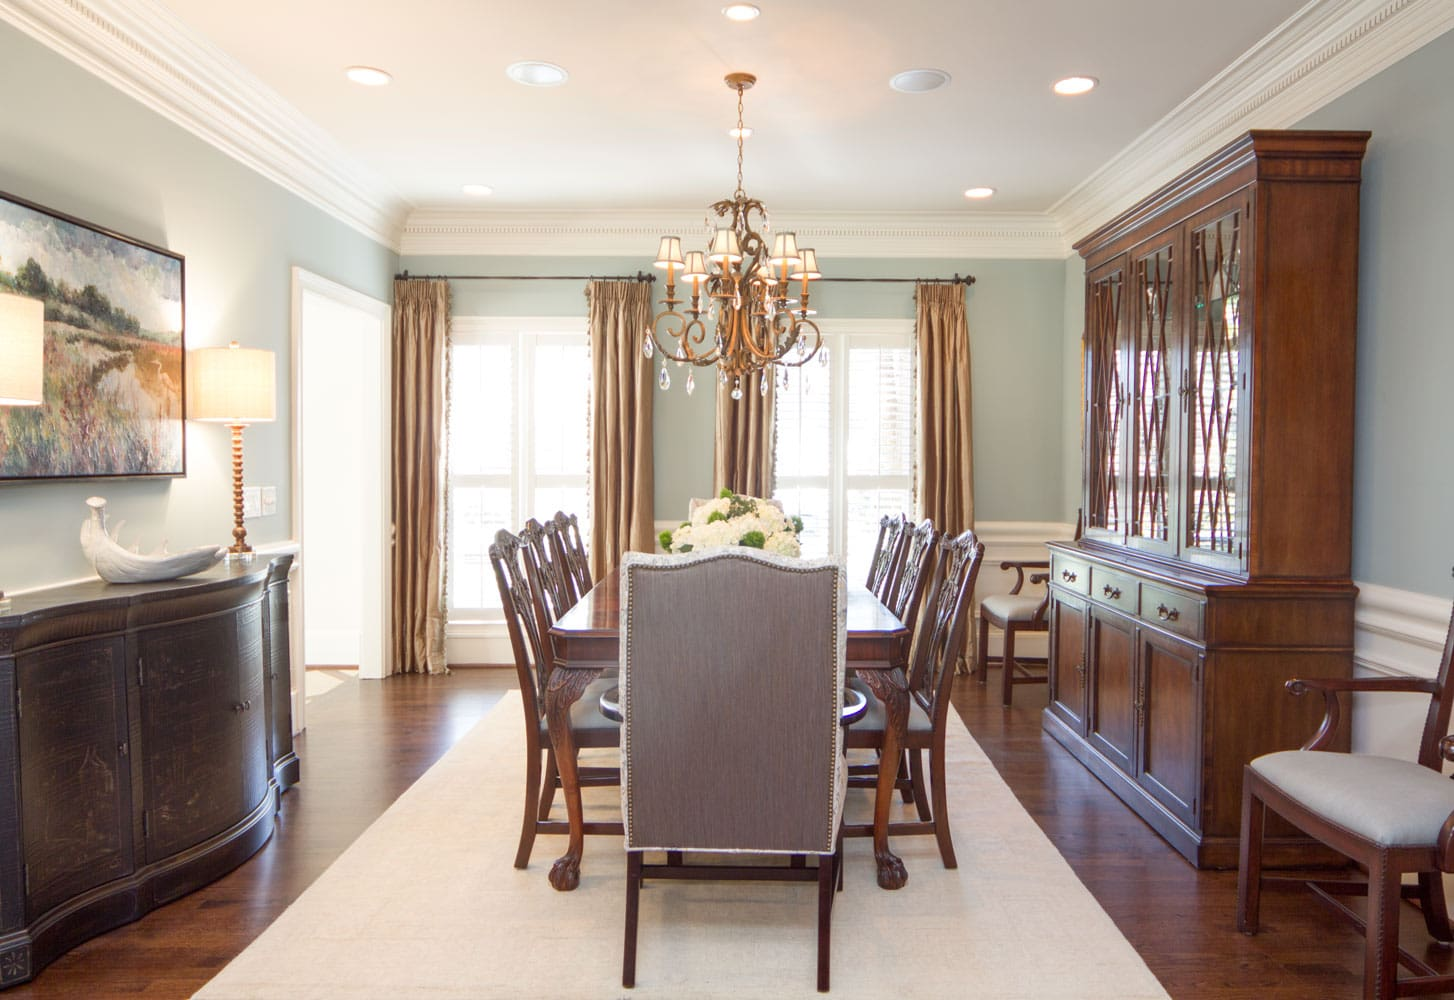 Dining room design in Riverland Ct, Atlanta